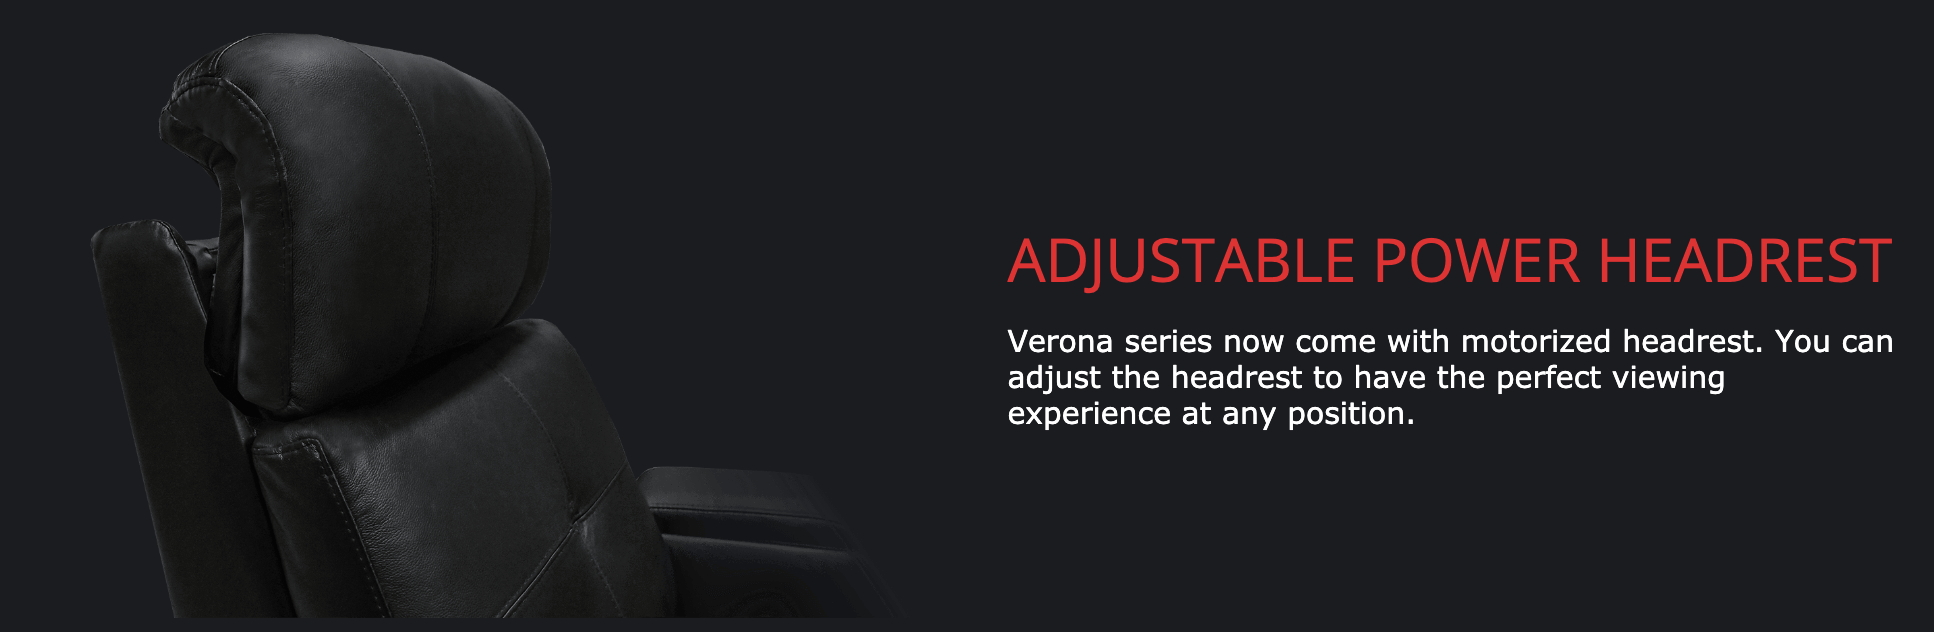 Verona Power Headrest